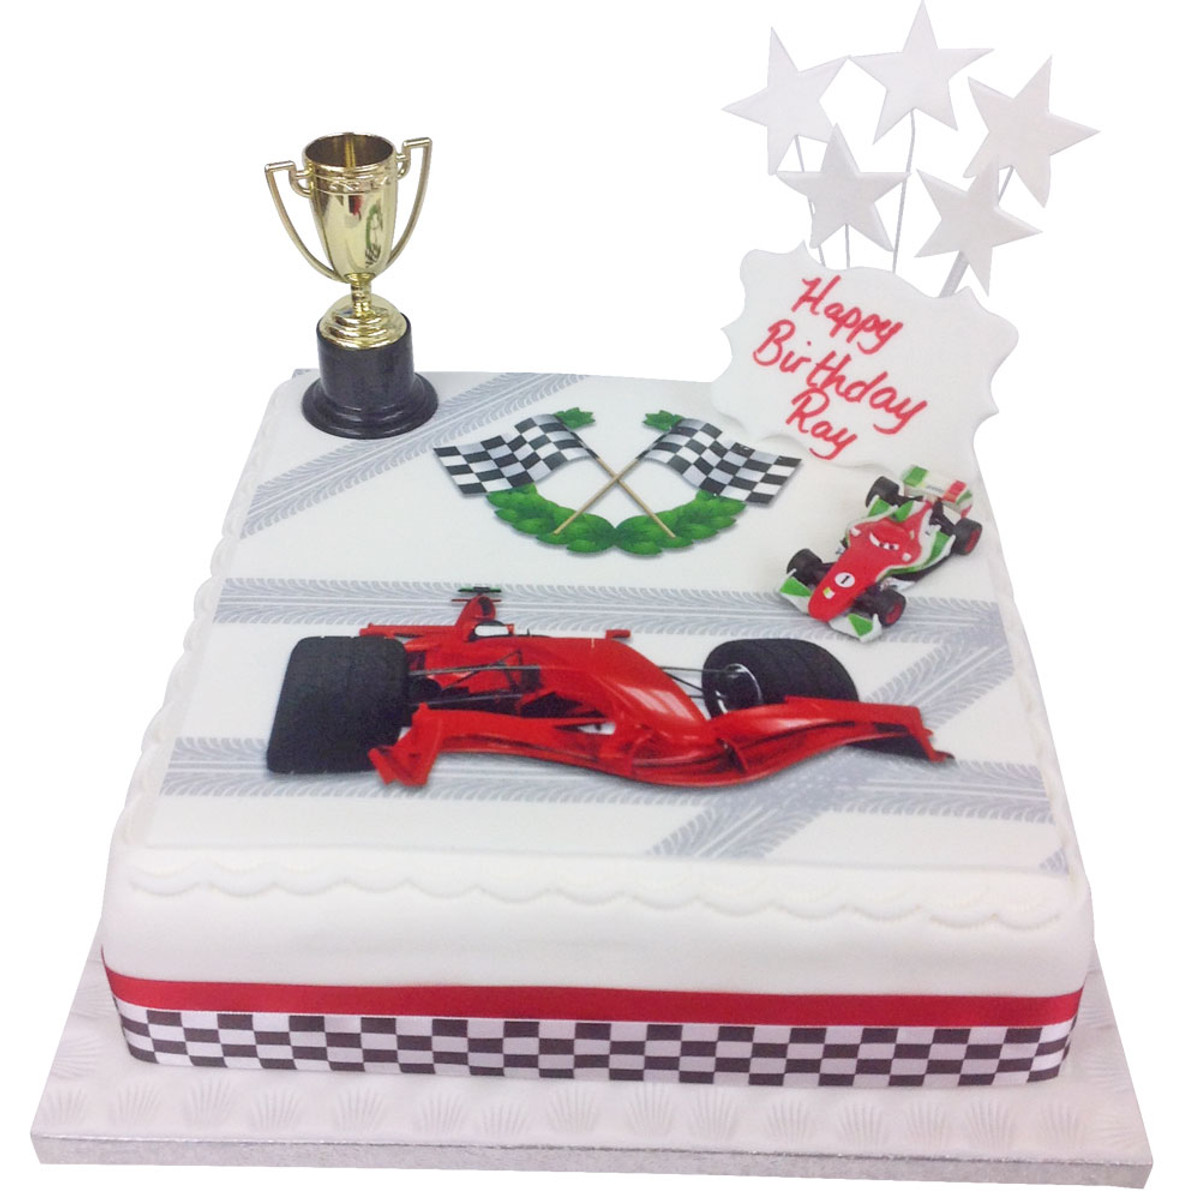 Superb Racing Car Birthday Cake Car Birthday Cakes The Brilliant Bakers Funny Birthday Cards Online Elaedamsfinfo